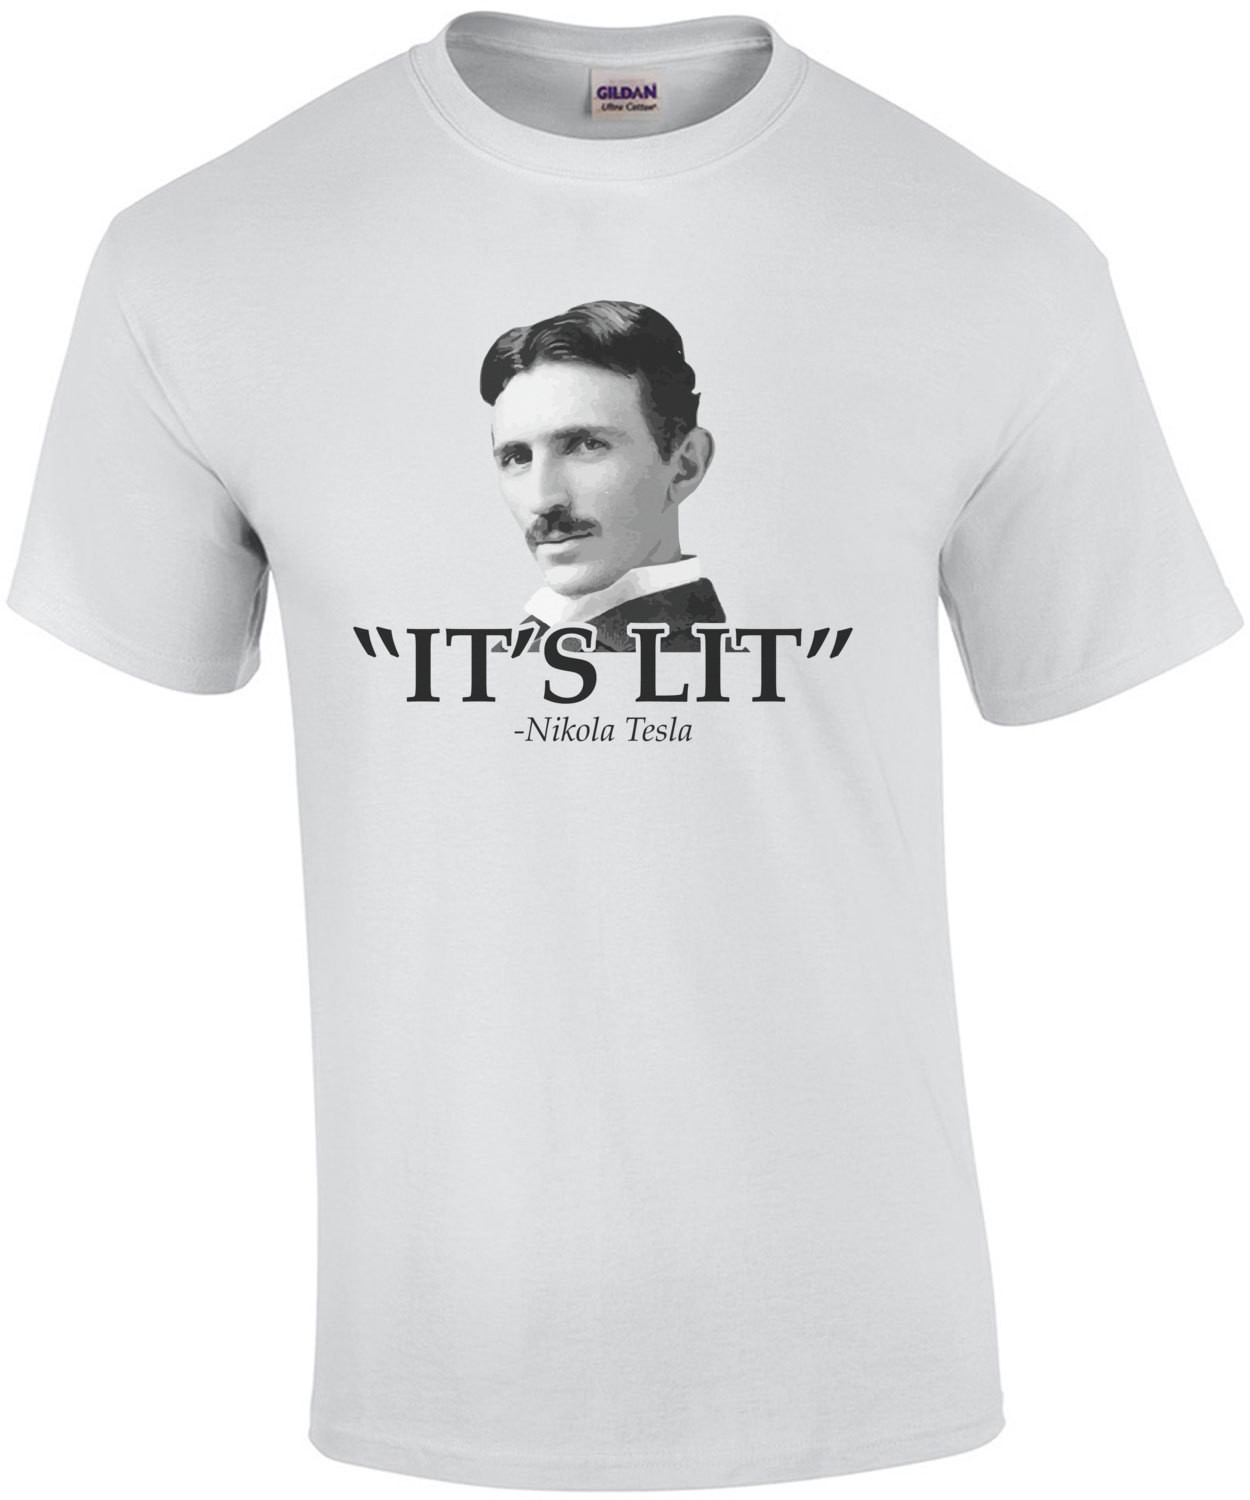 It's lit - Nikola Tesla T-Shirt